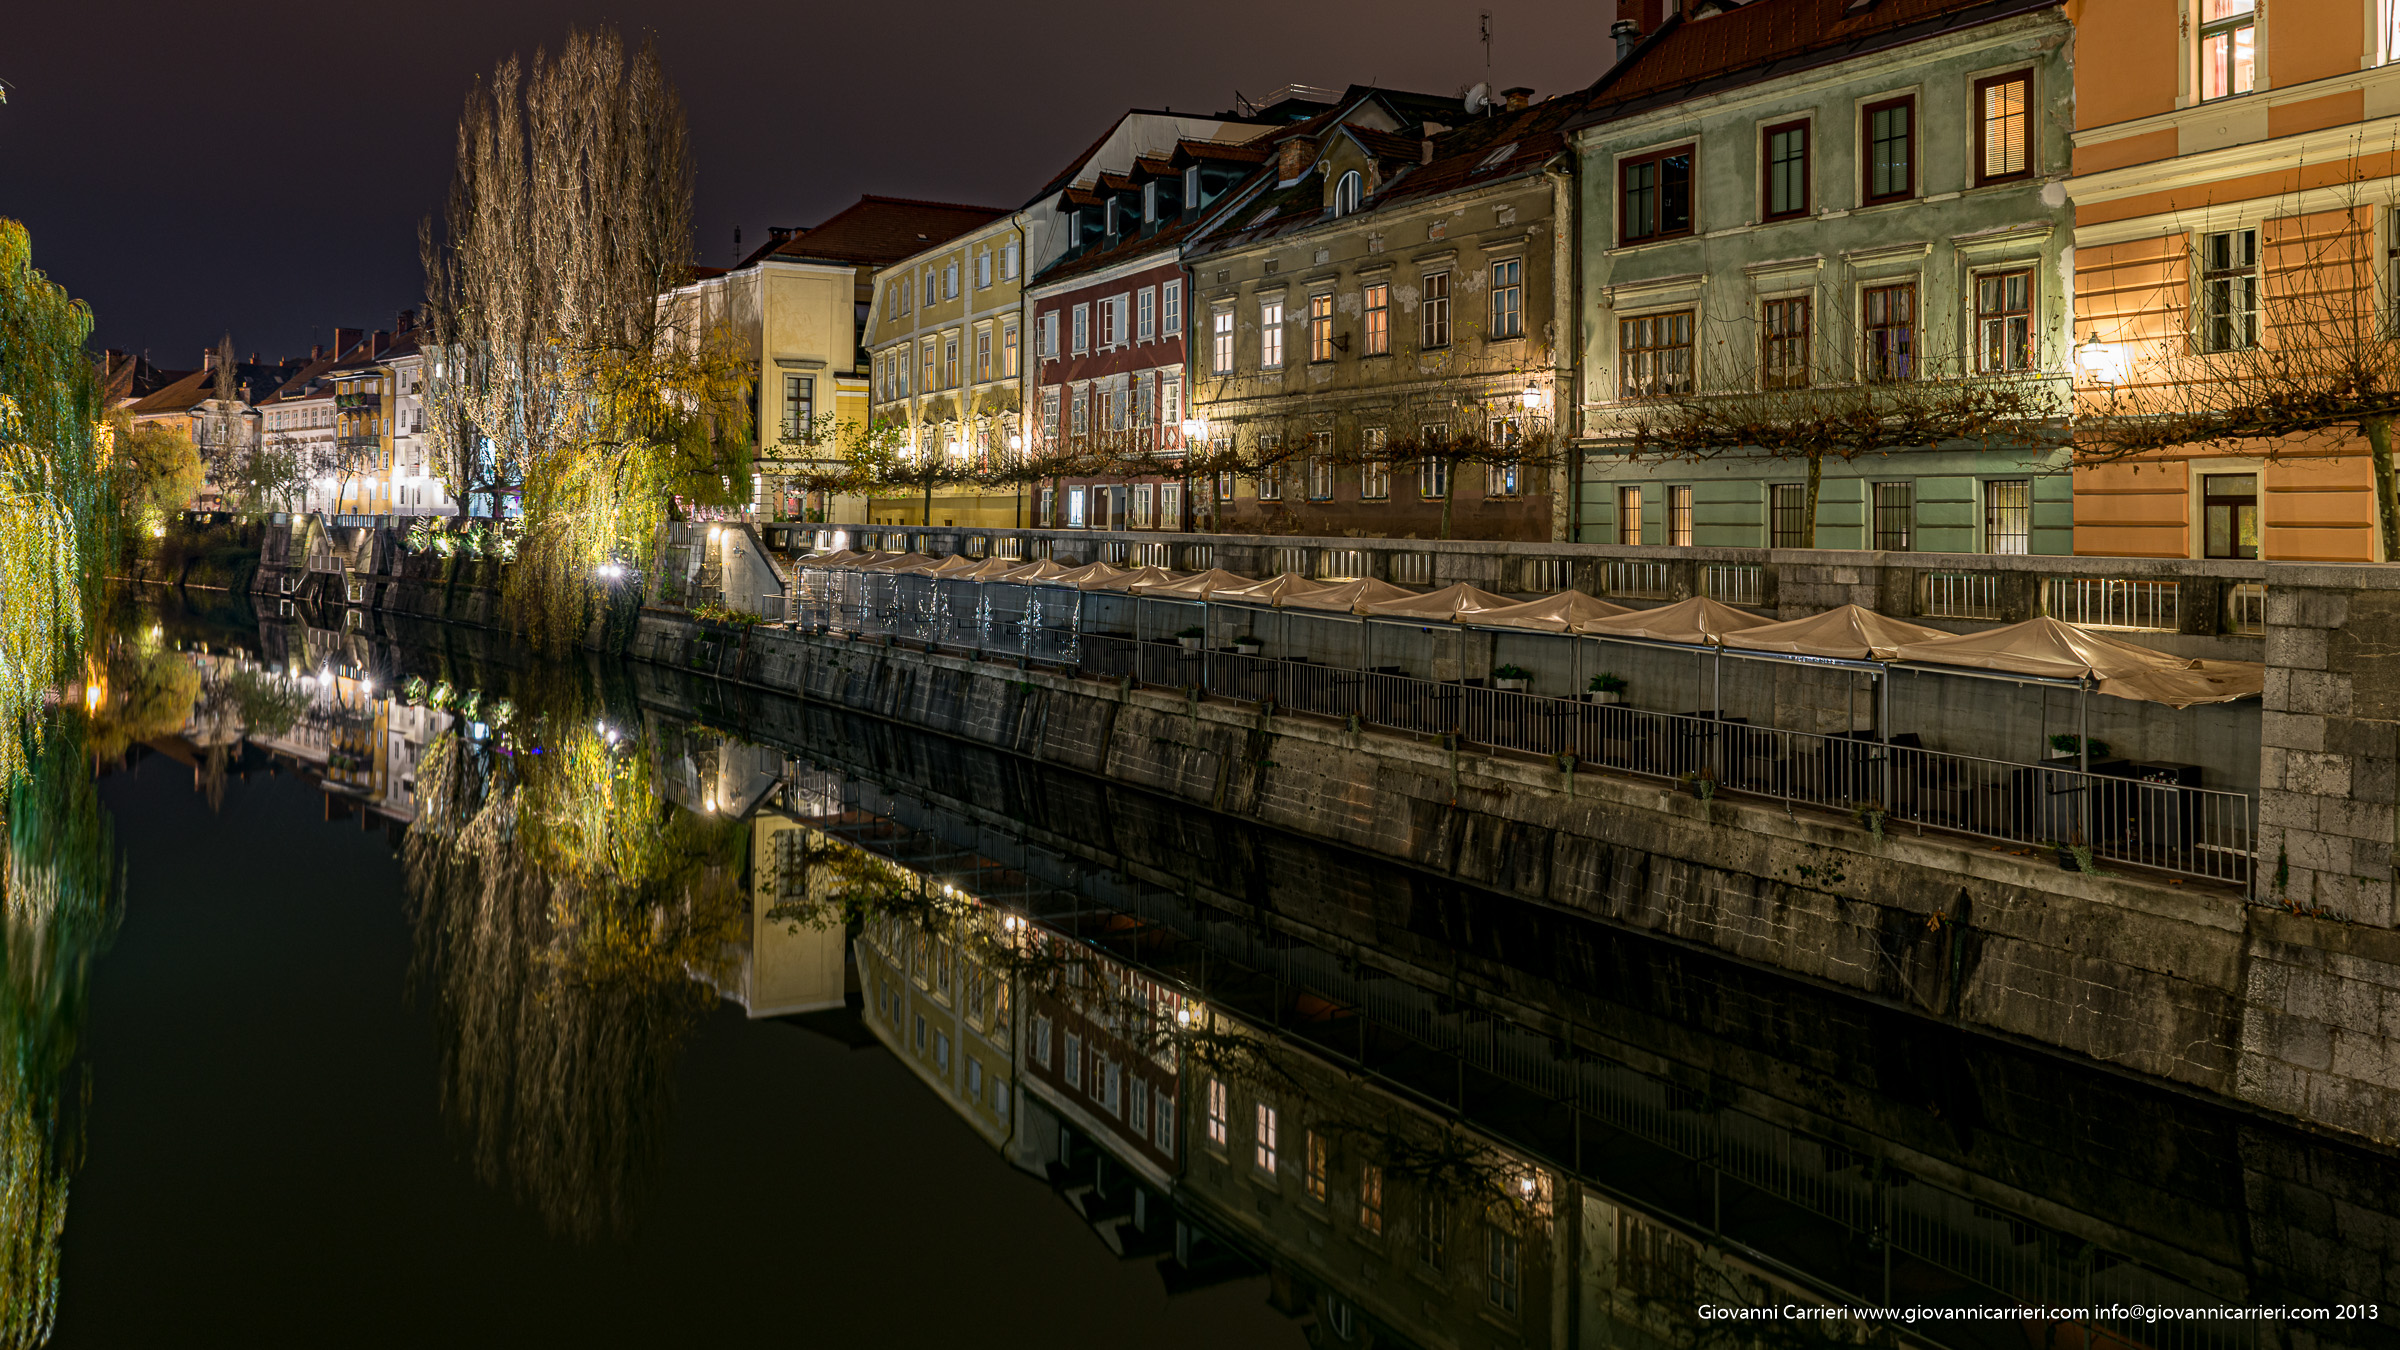 The willows weep and reflected in the river - Ljubljana